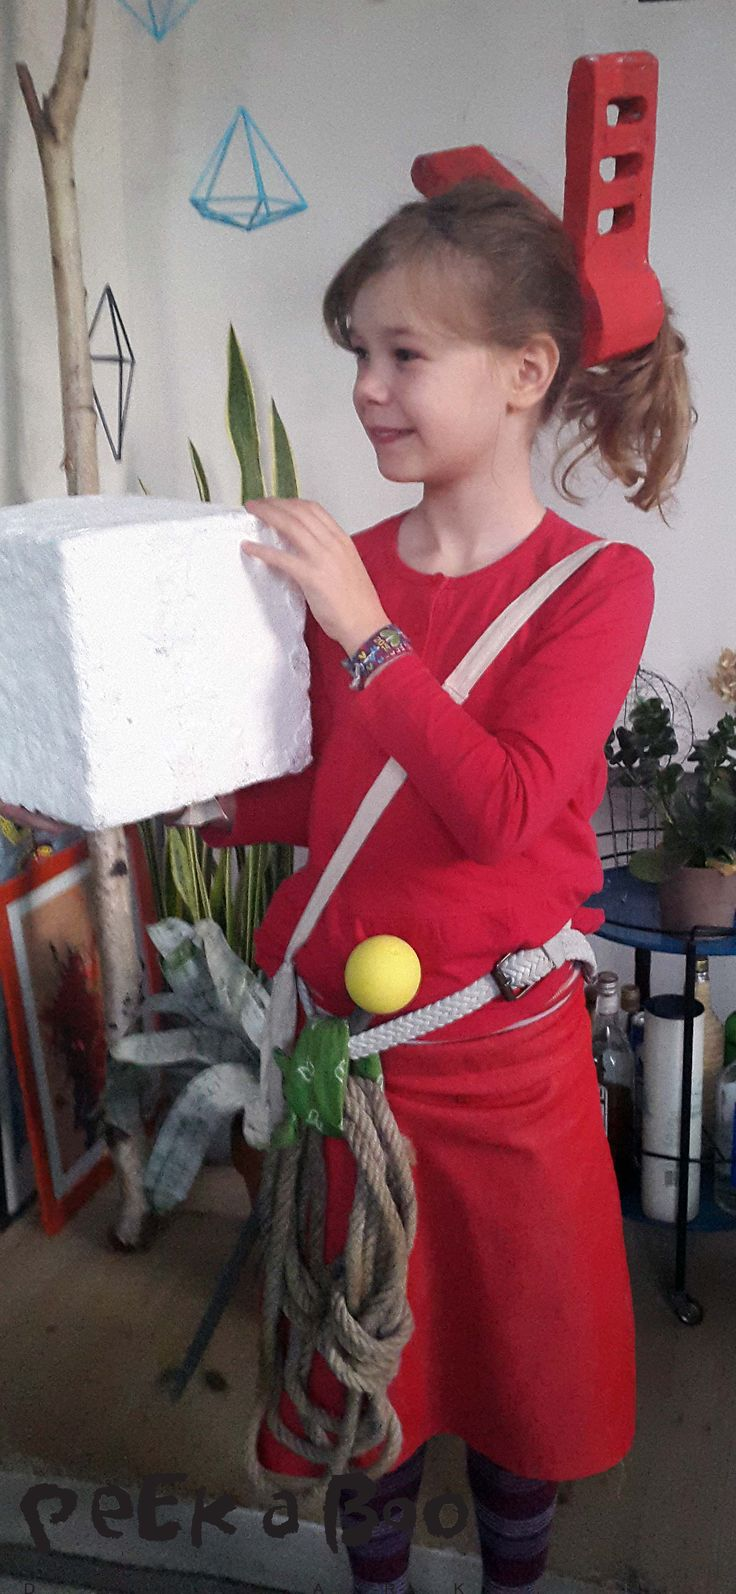 Arietty costume for the kids. see how easy it's made on the blog. Design Blog - DIY - Home Garden and Living inspiration - Peekaboo Design